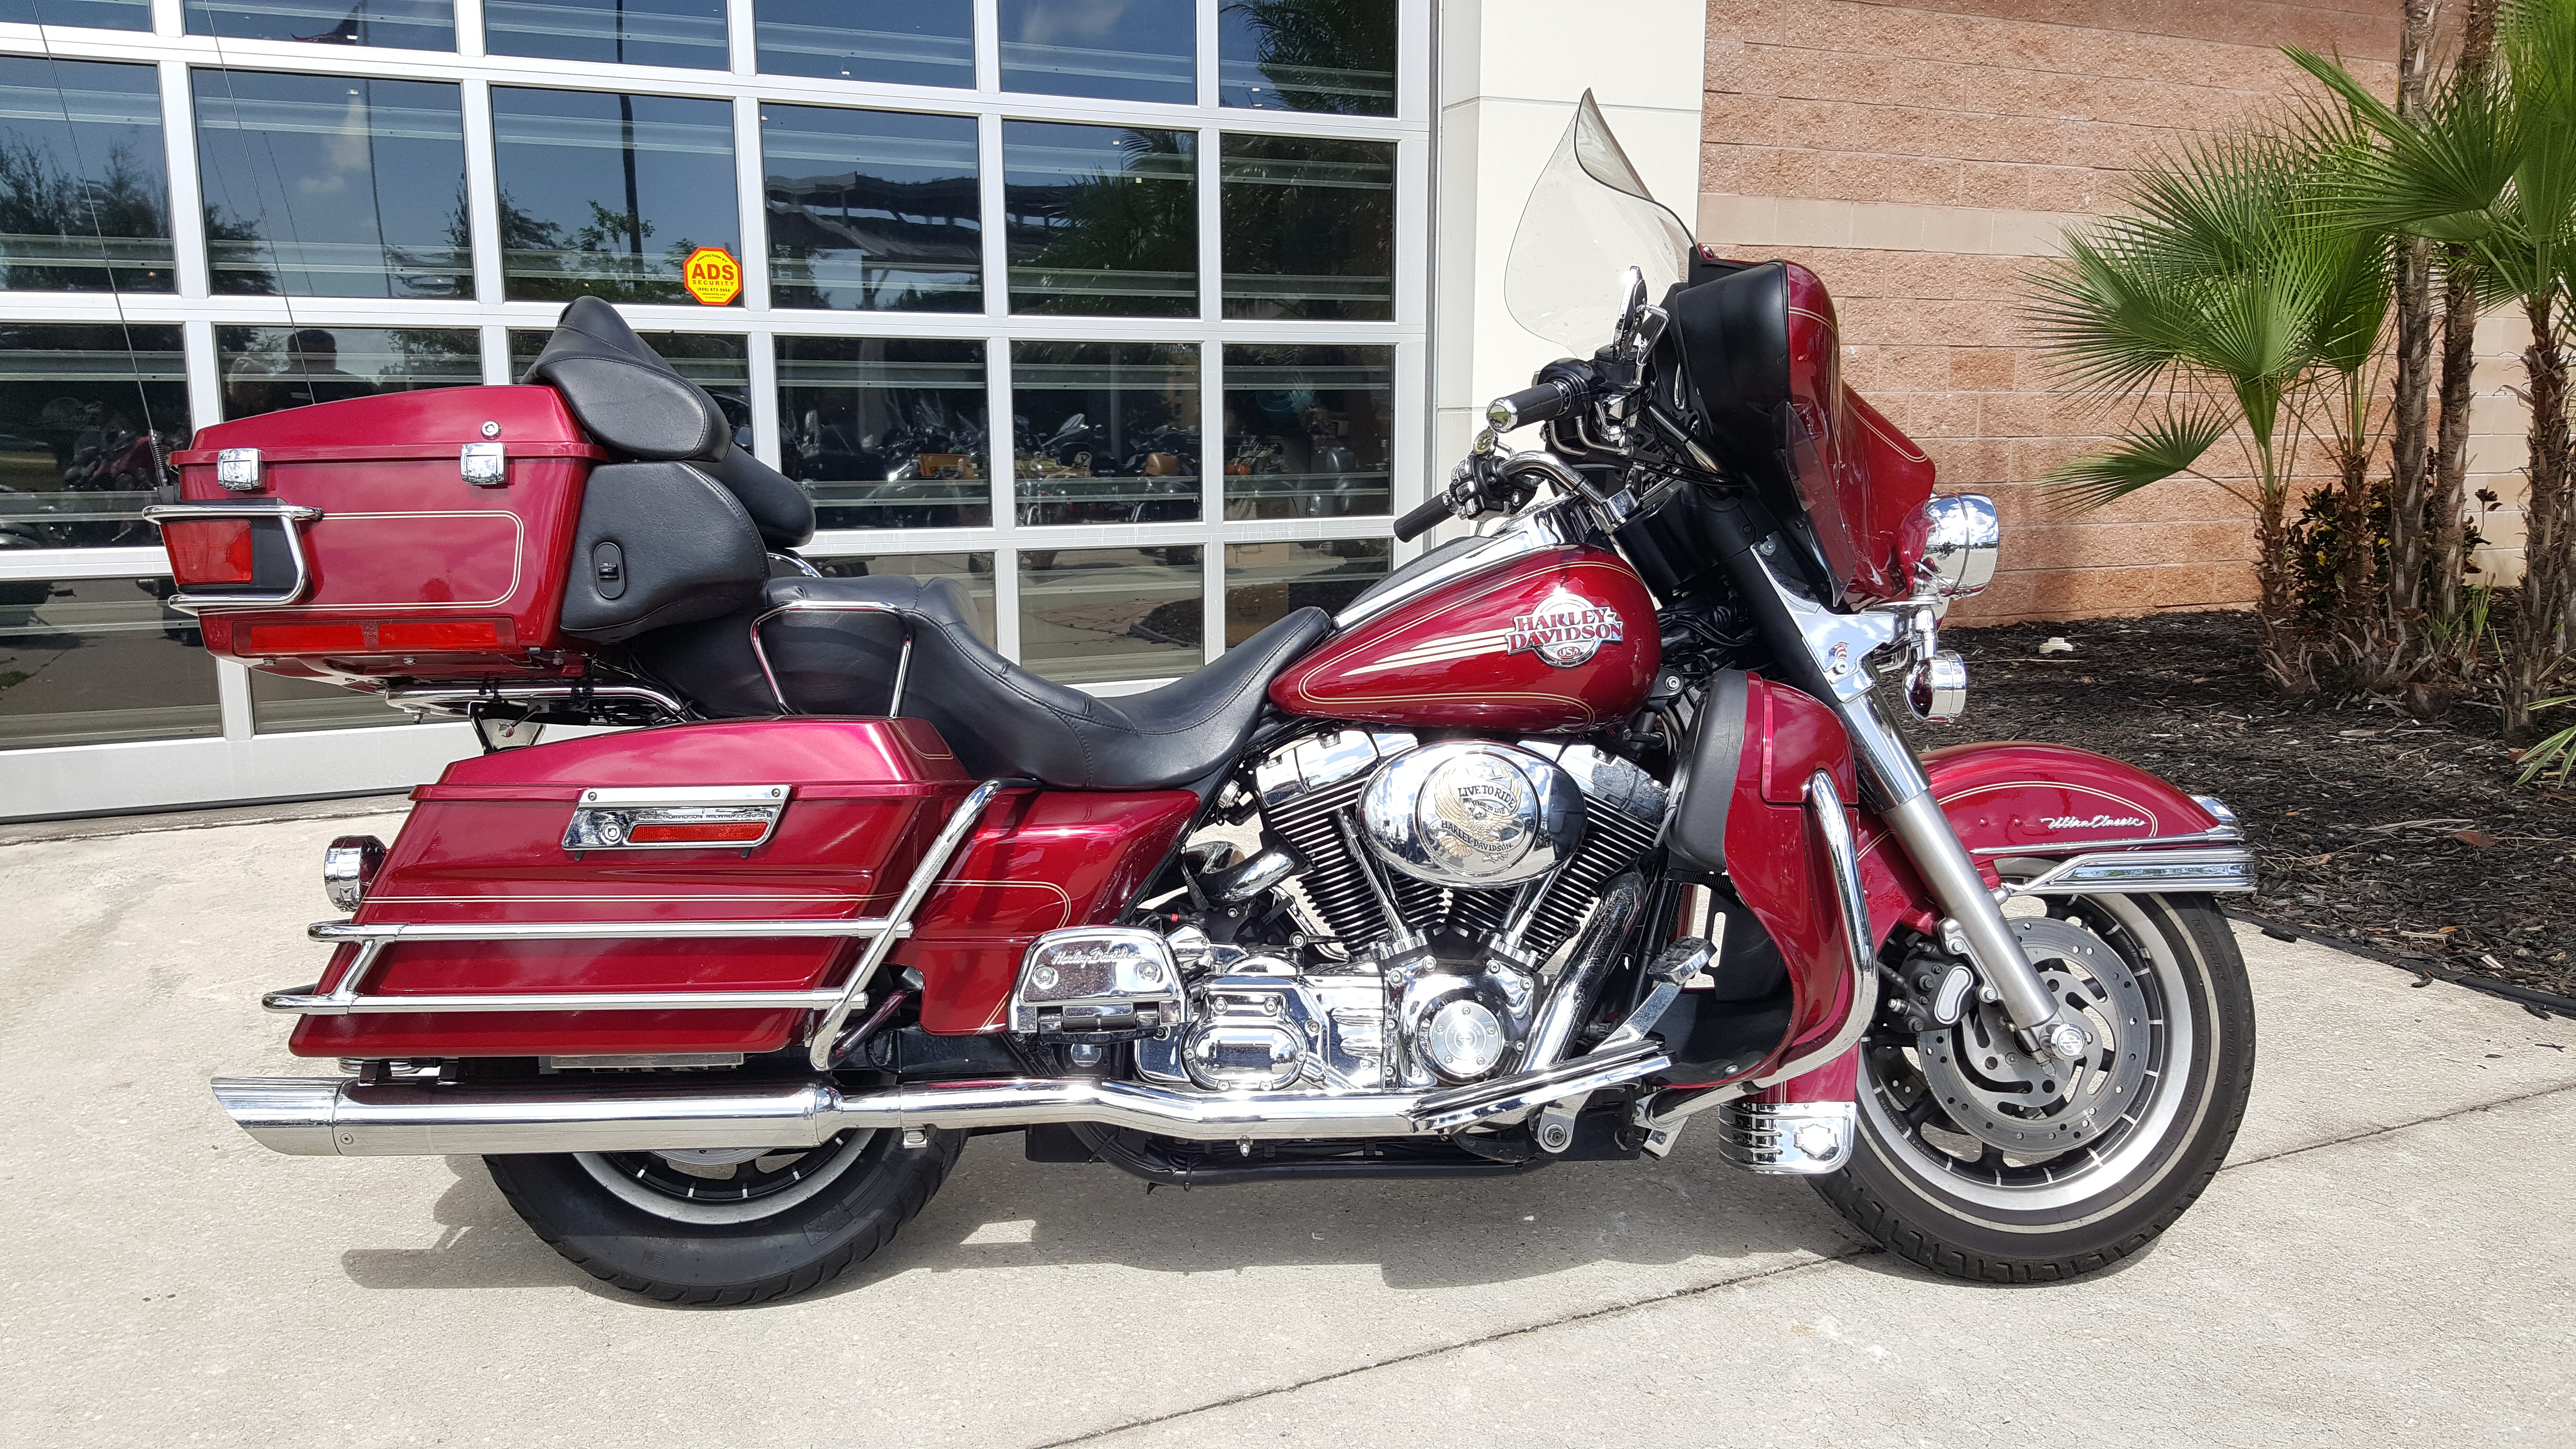 Prime Pre Owned 2005 Harley Davidson Touring Electra Glide Ultra Classic Flhtcui Unemploymentrelief Wooden Chair Designs For Living Room Unemploymentrelieforg